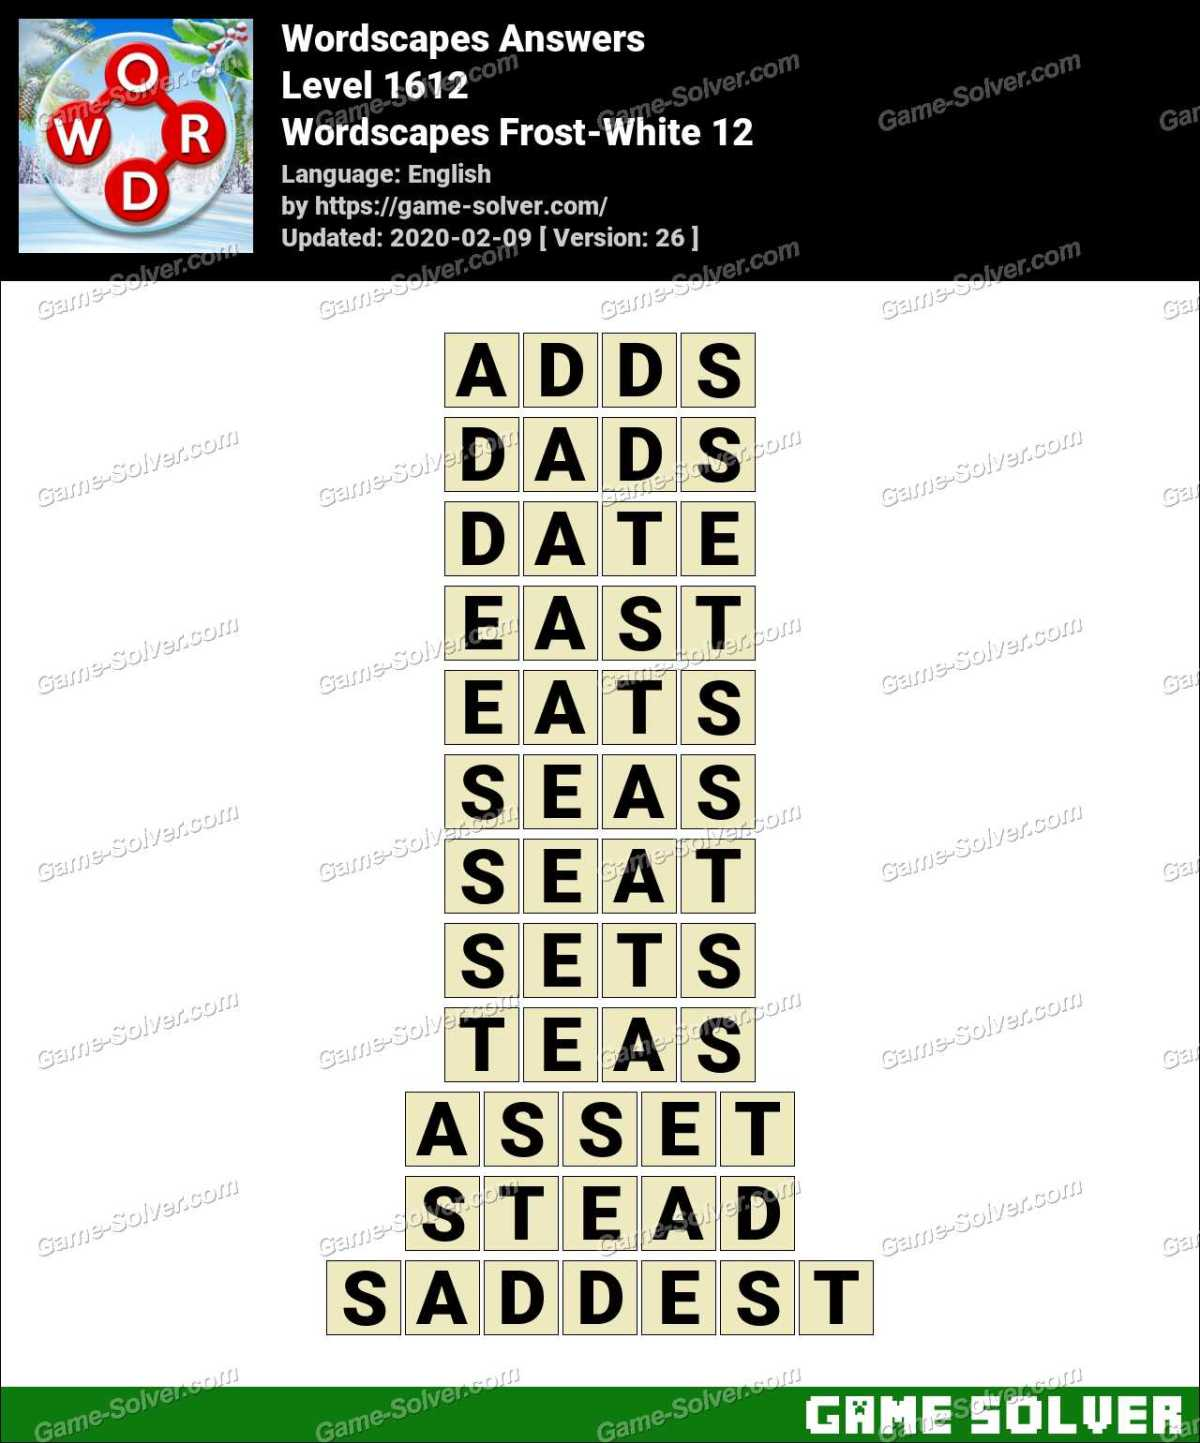 Wordscapes Frost-White 12 Answers